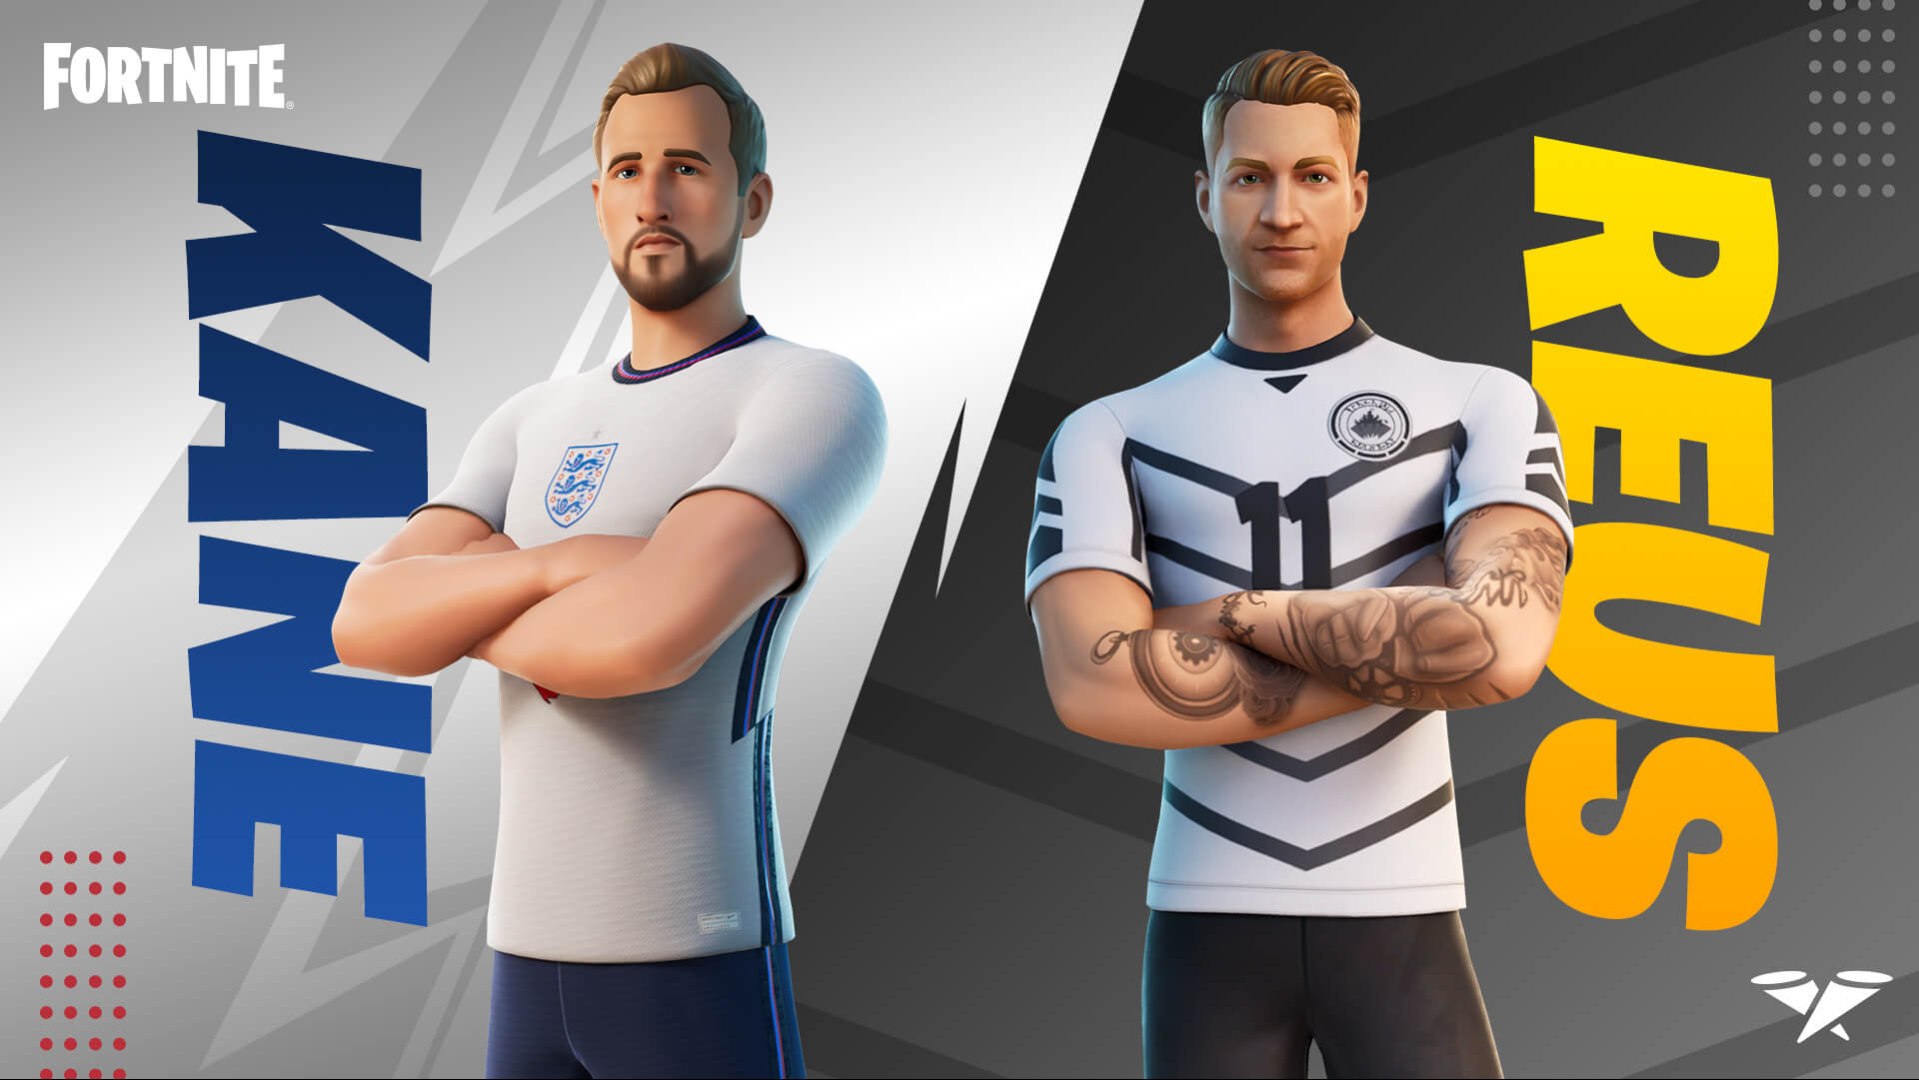 Fortnite: Battle Royale – Kane And Reus Outfits On Their Way!